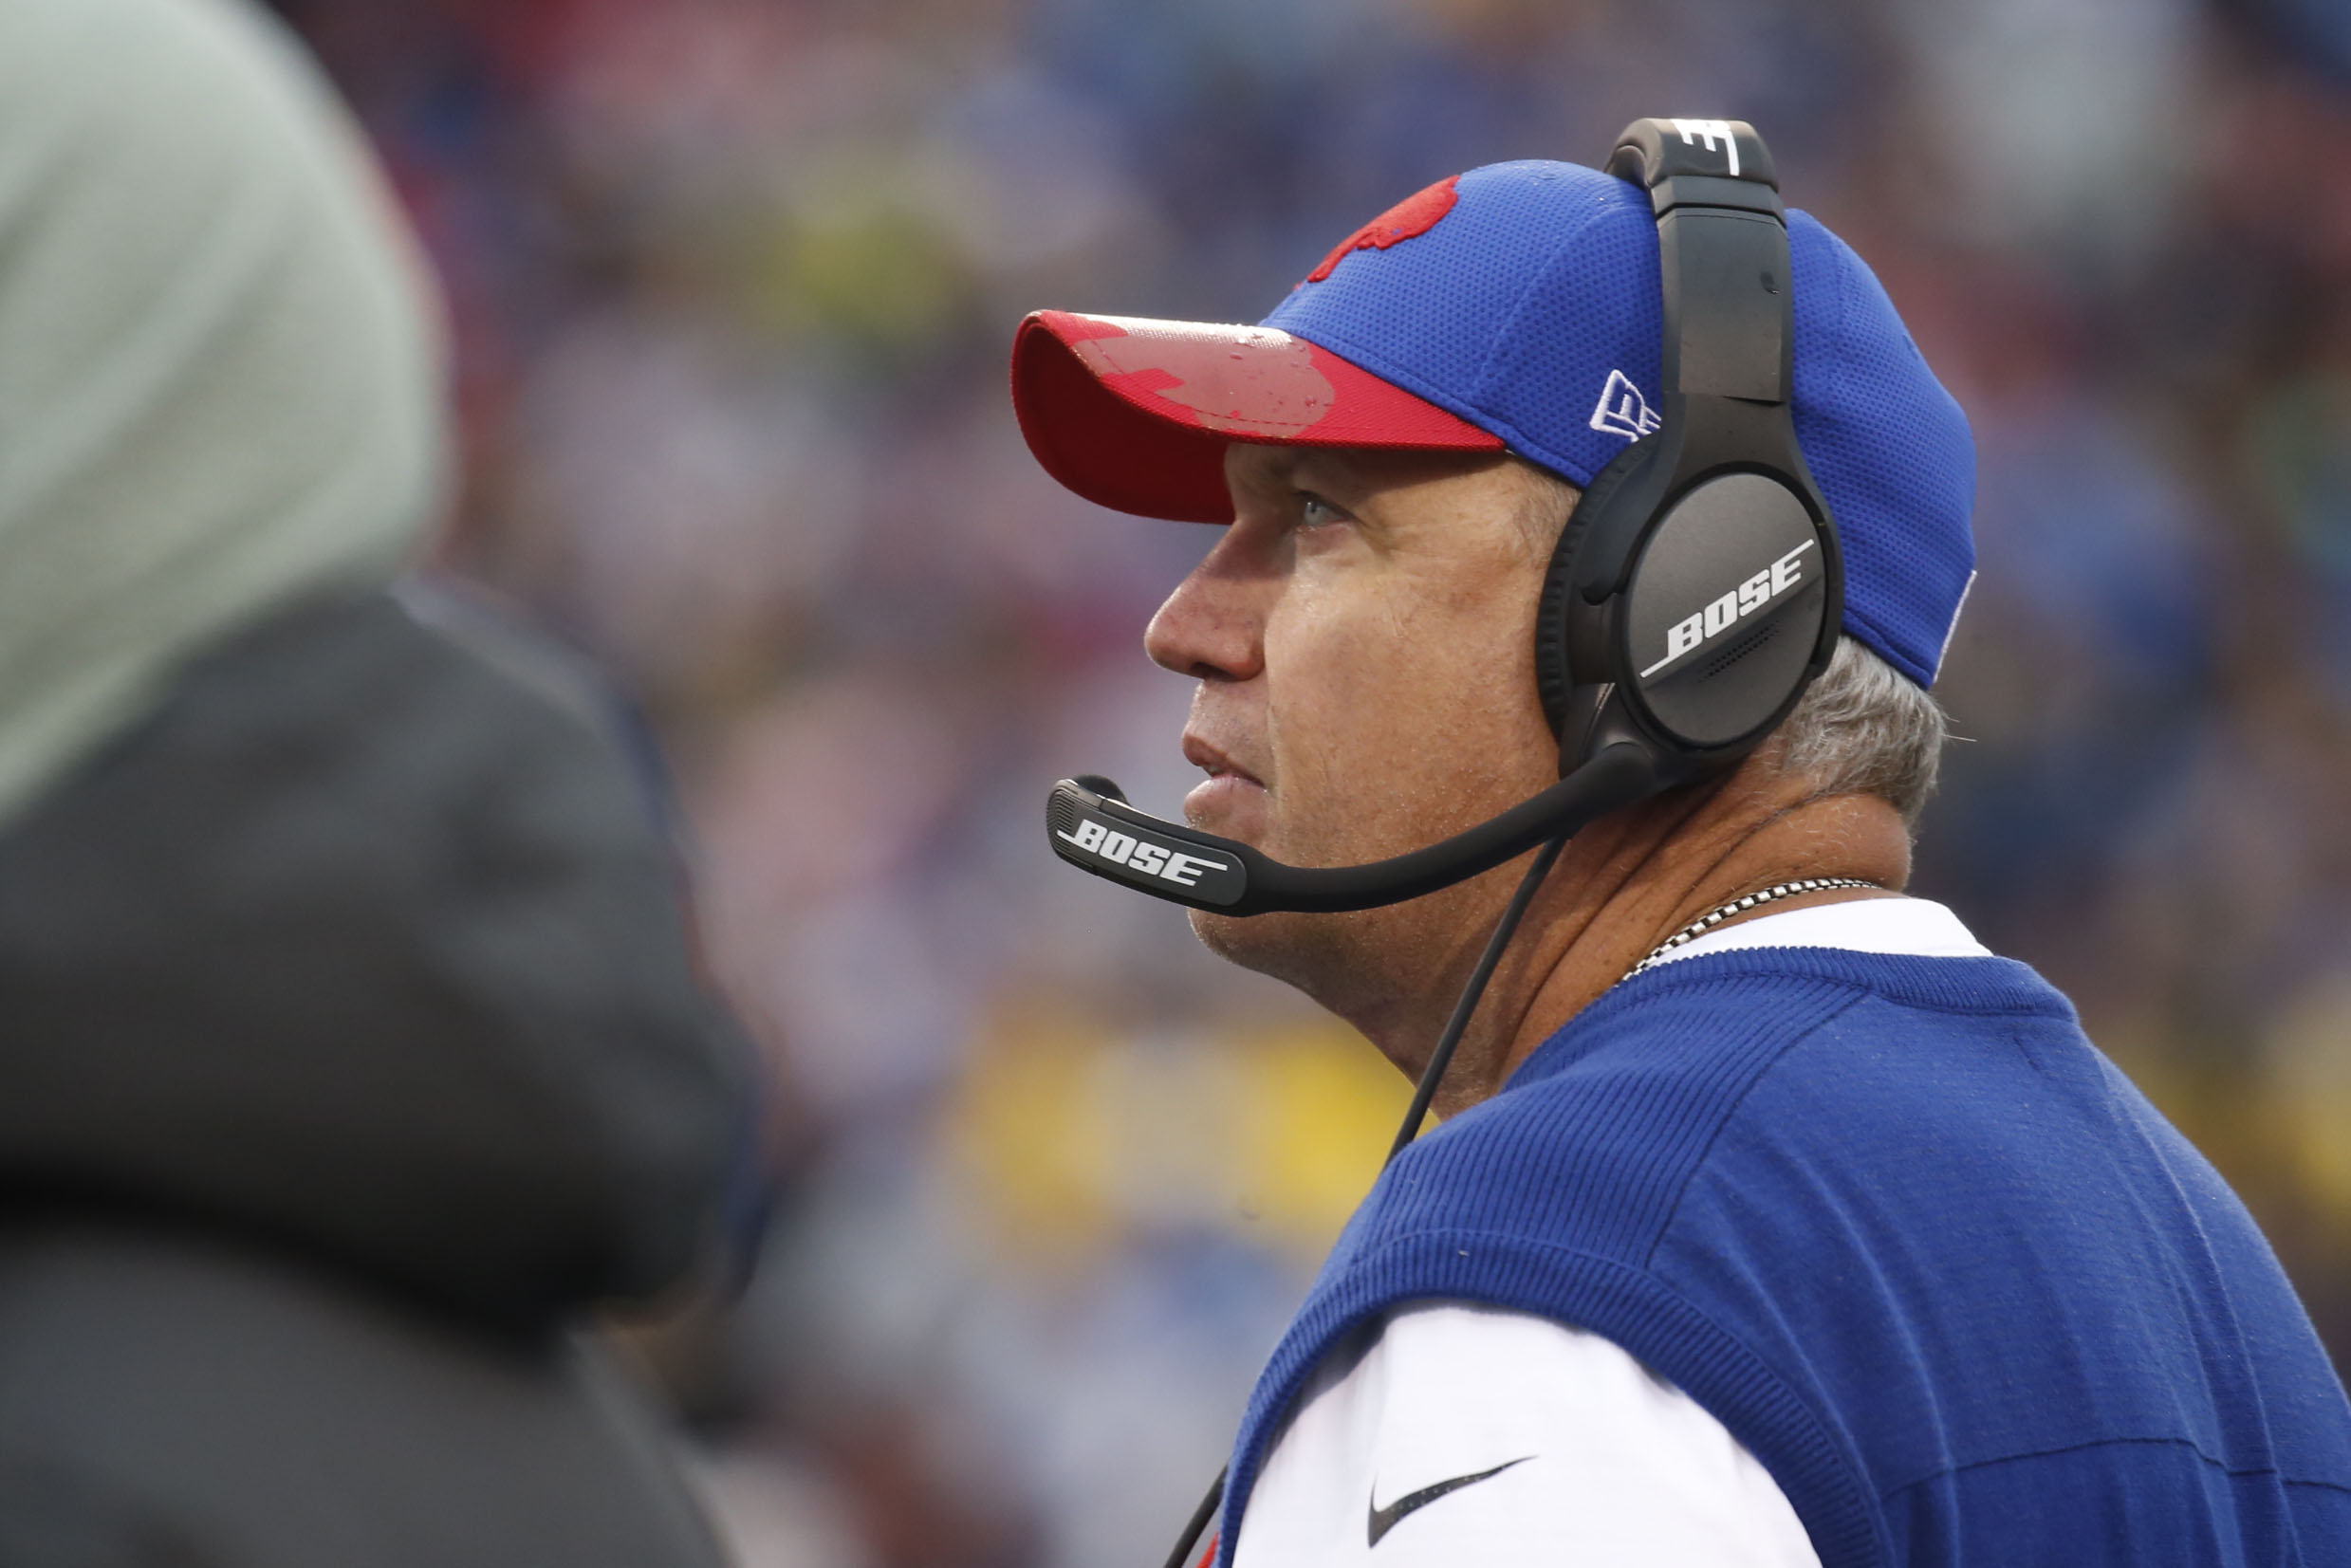 Buffalo Bills head coach Rex Ryan looks up at the scoreboard during the third quarter against the Patriots at New Era Field in Orchard Park, Sunday, Oct. 30, 2016.  (Robert Kirkham/Buffalo News)